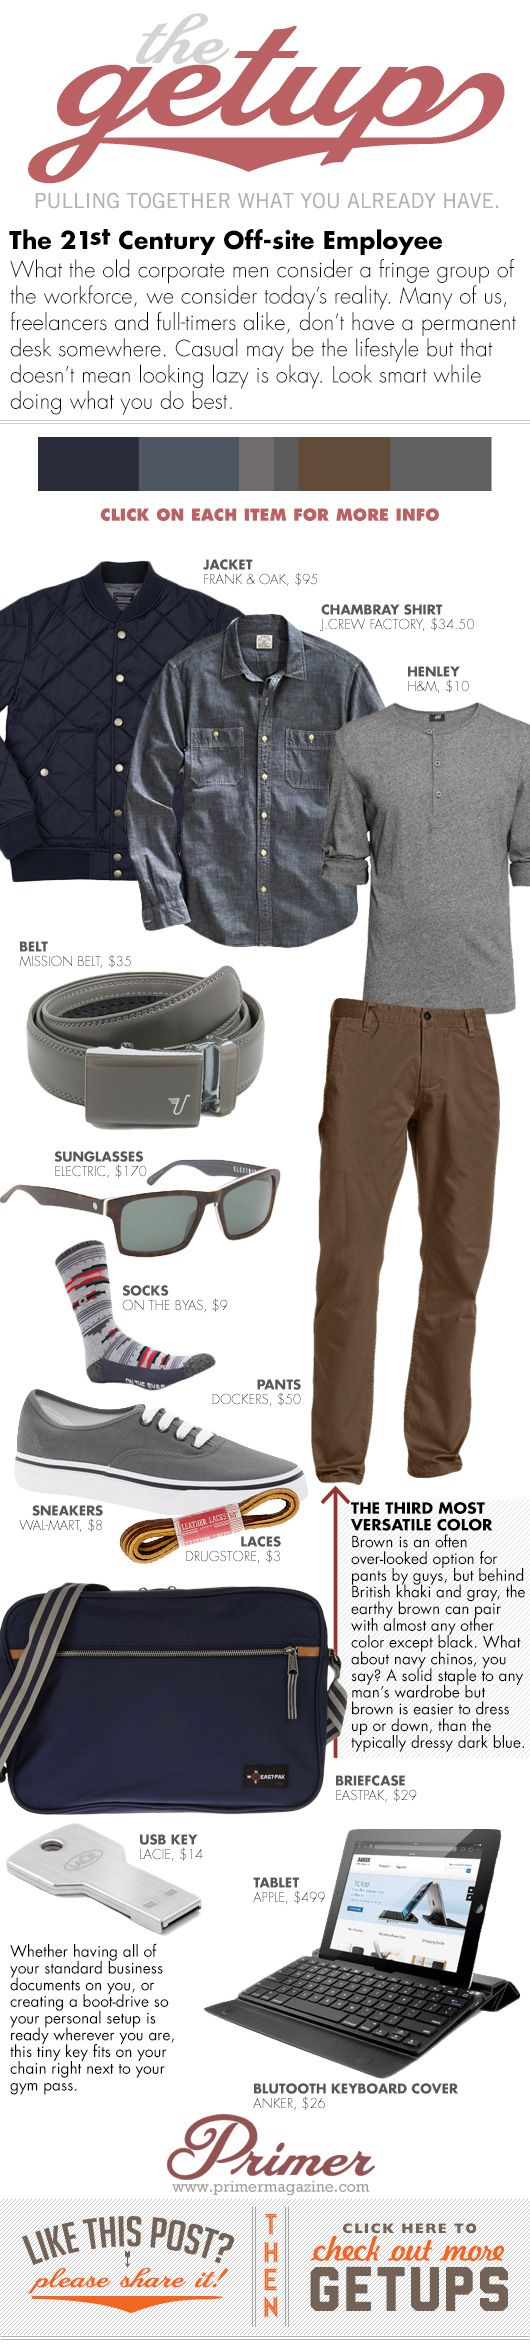 The Getup: The 21st Century Off-site Employee - Primer